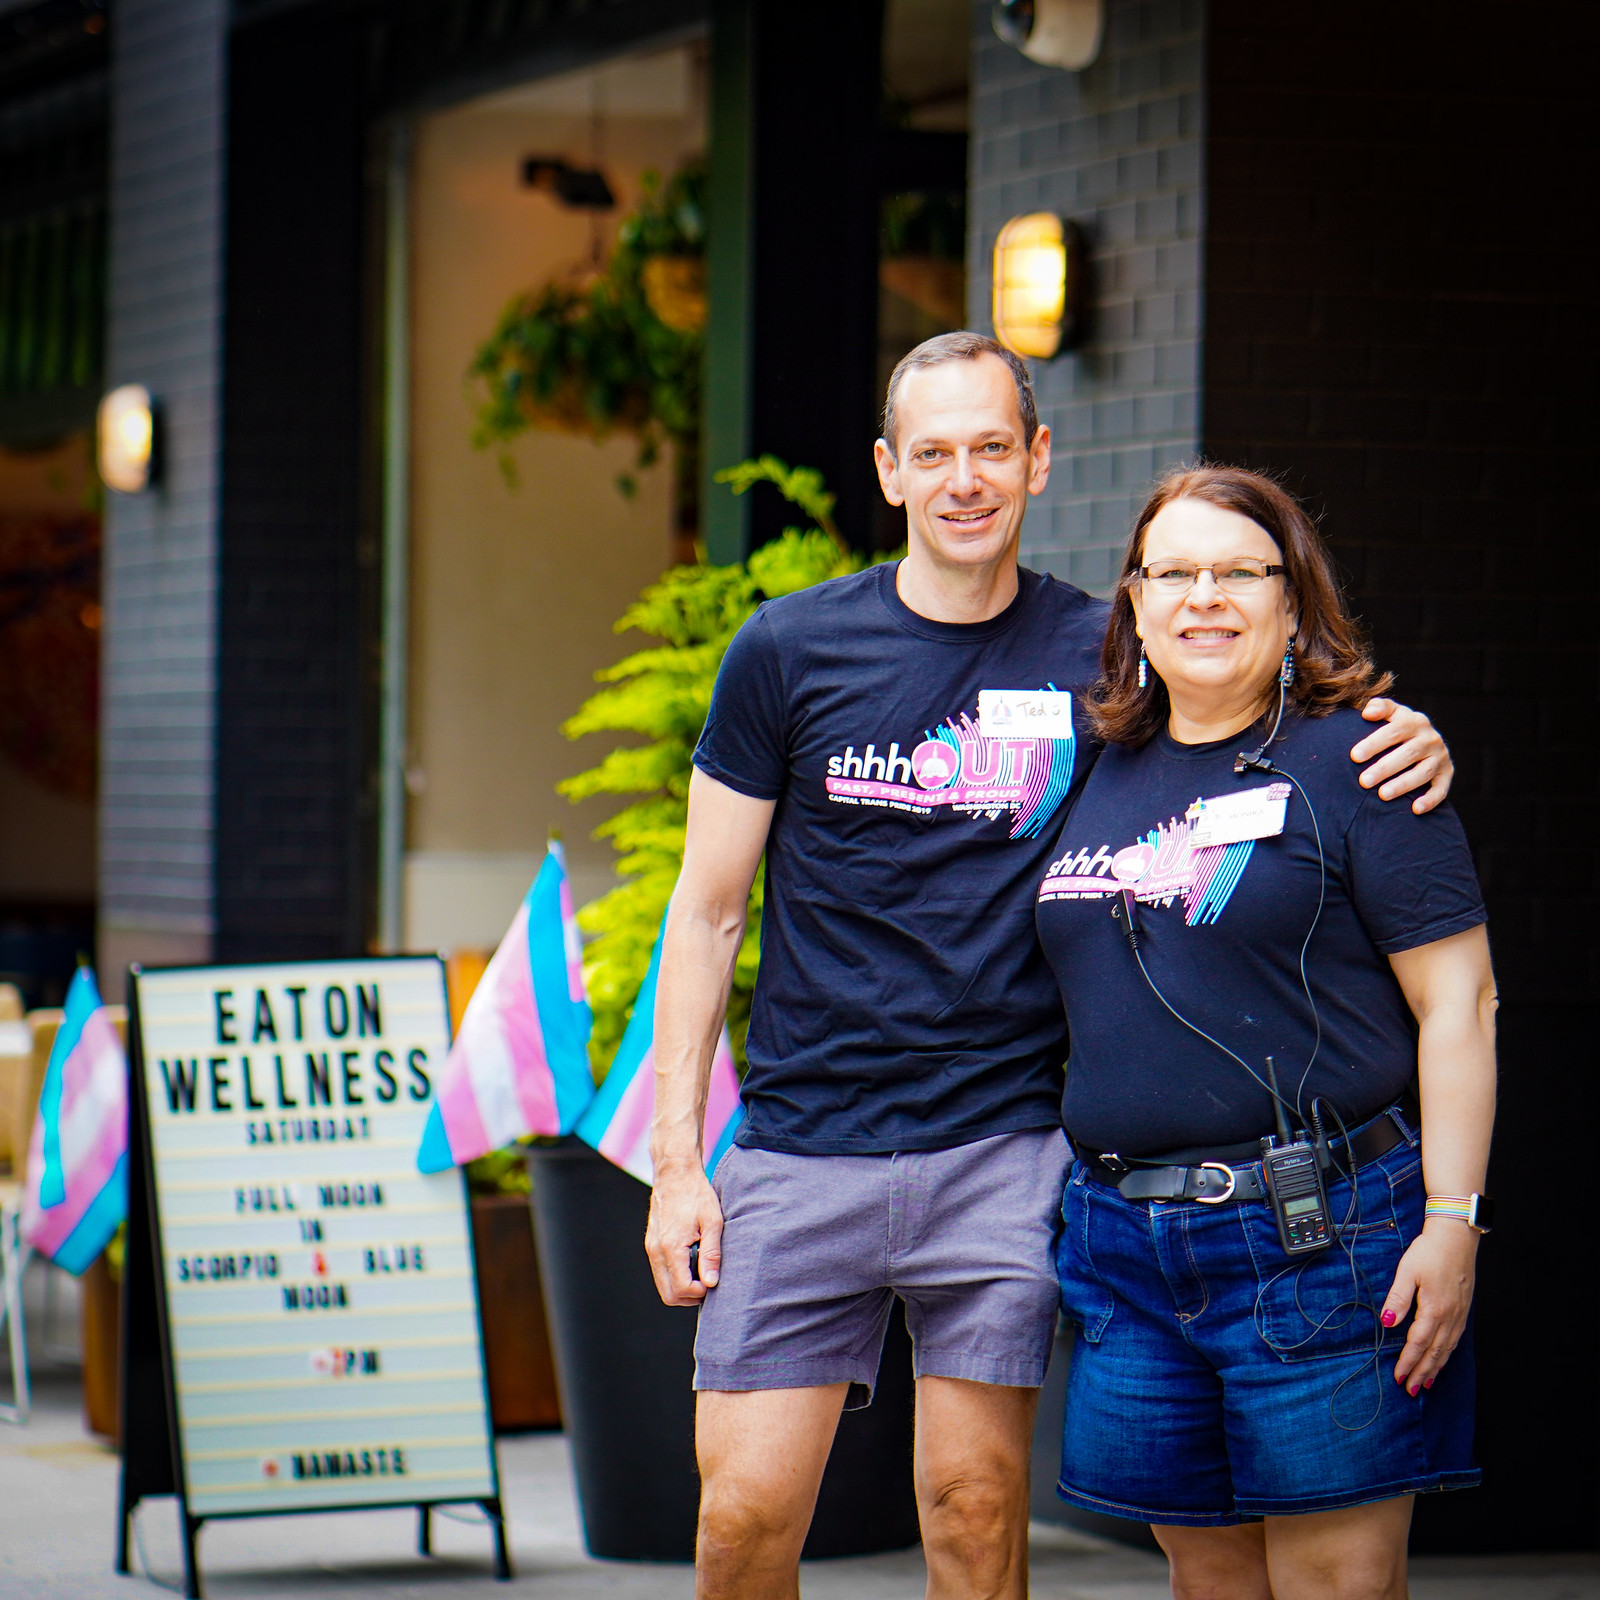 2019.05.18 Capital TransPride, Washington, DC USA 02772